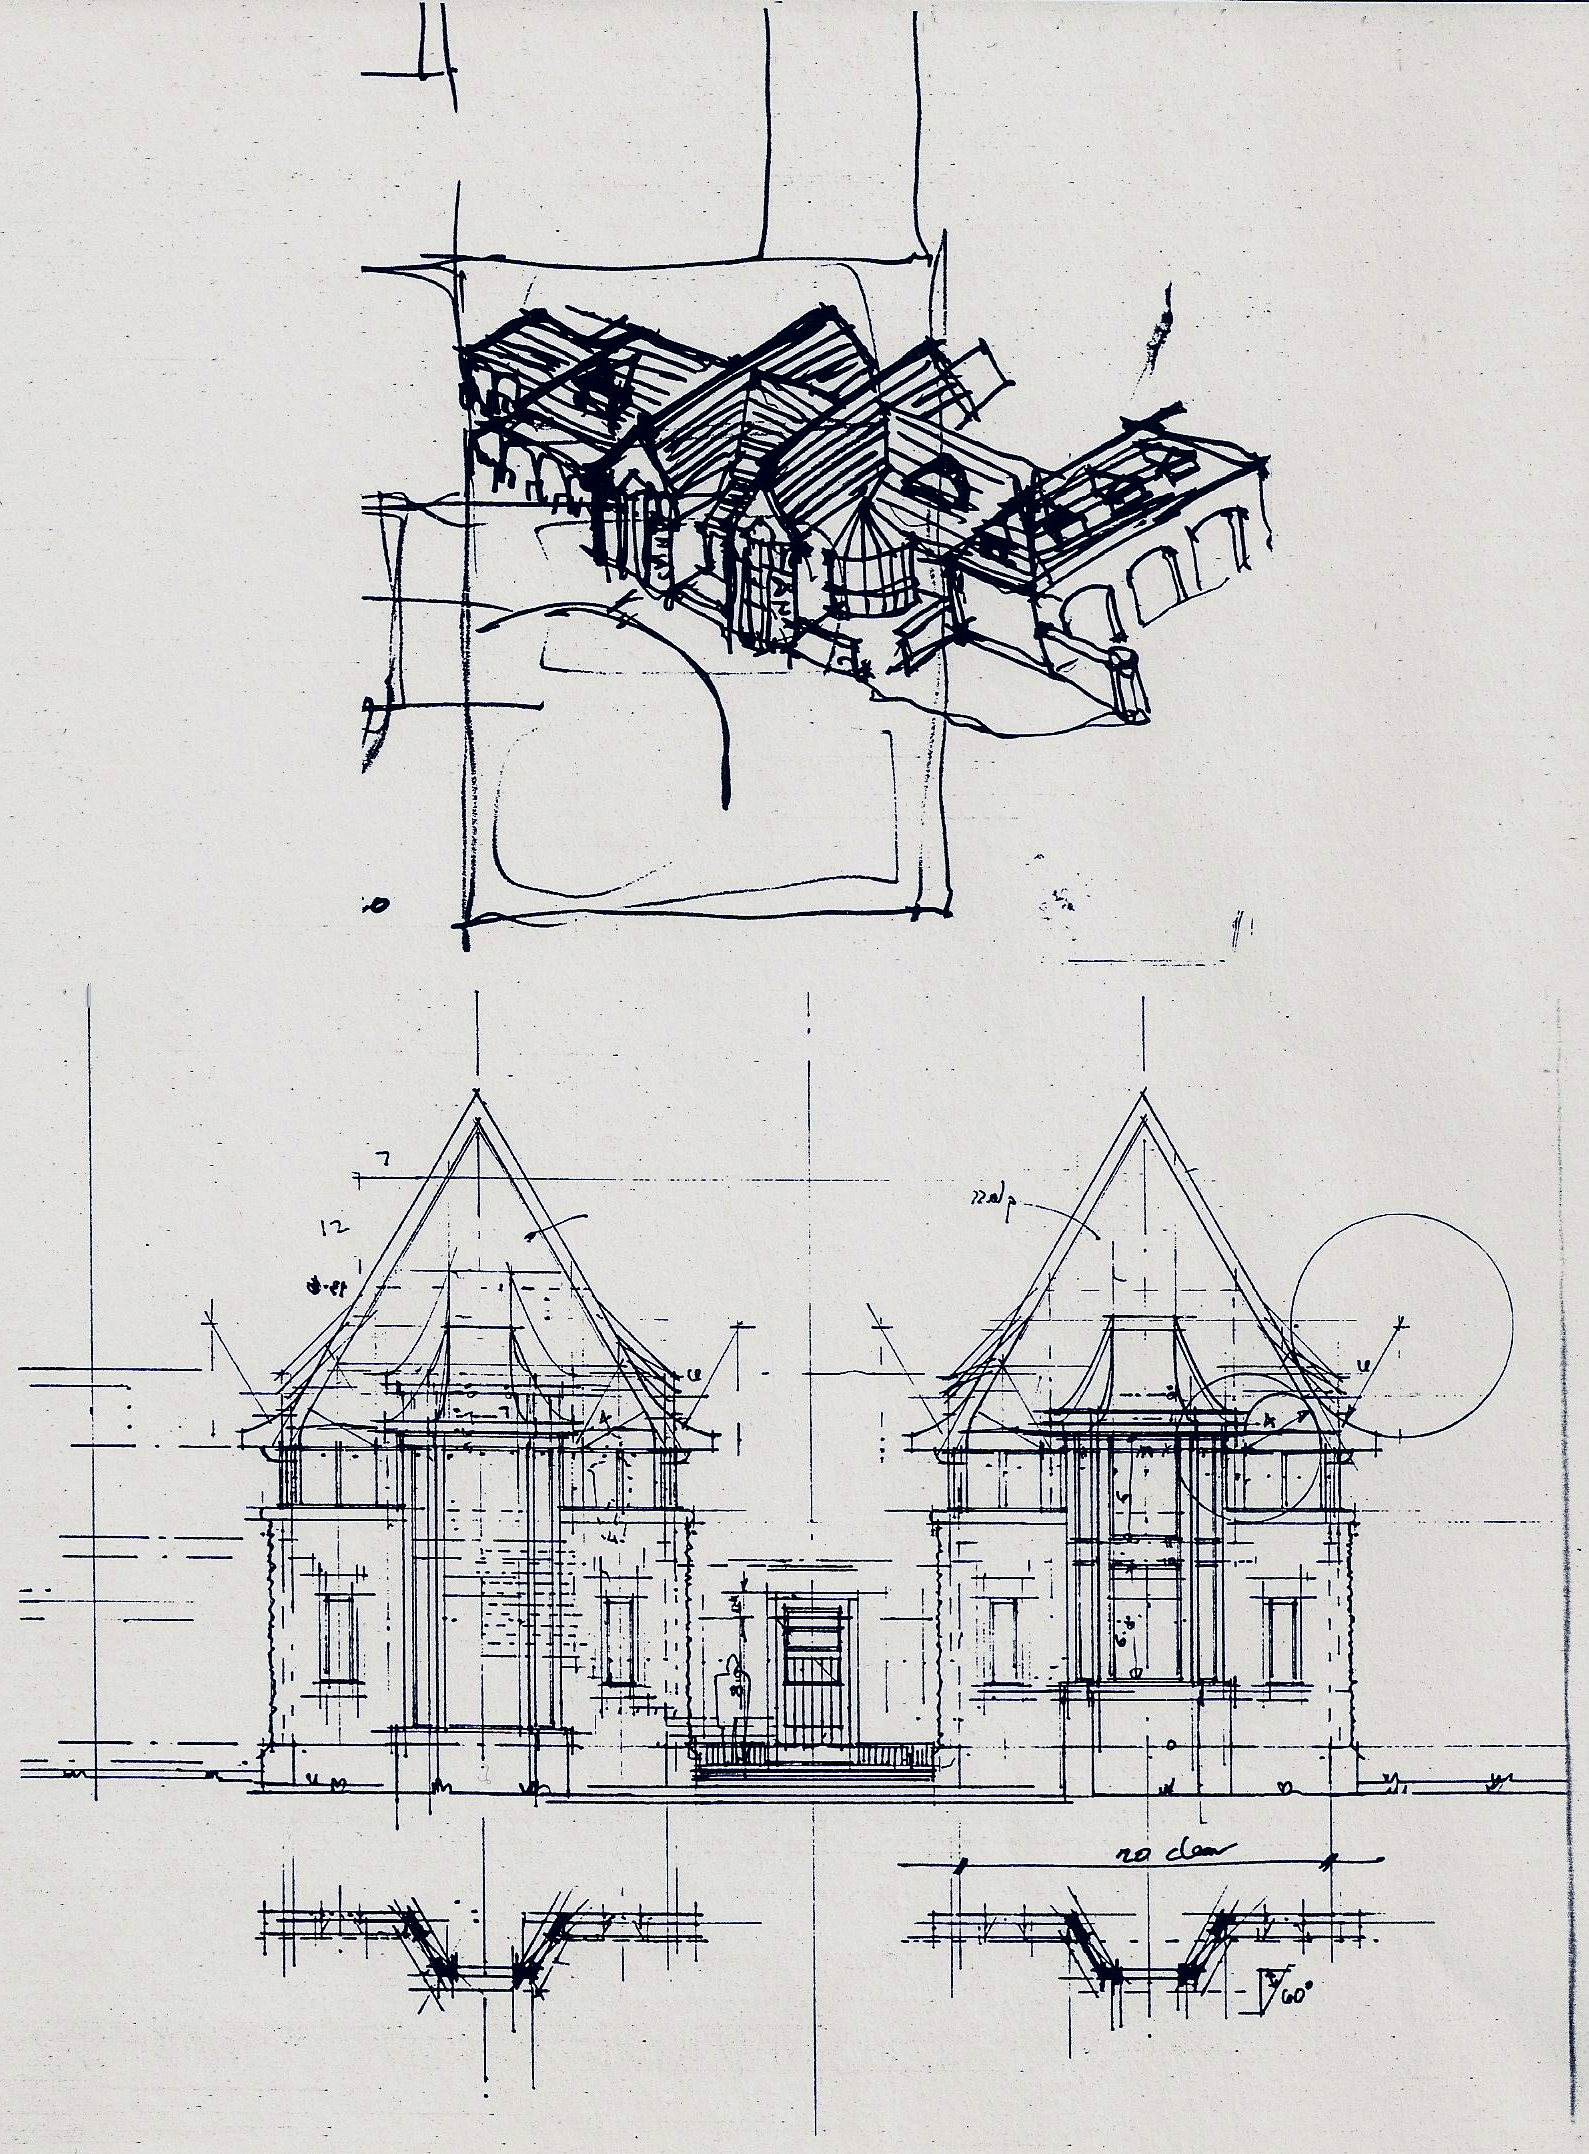 Early conceptual sketches